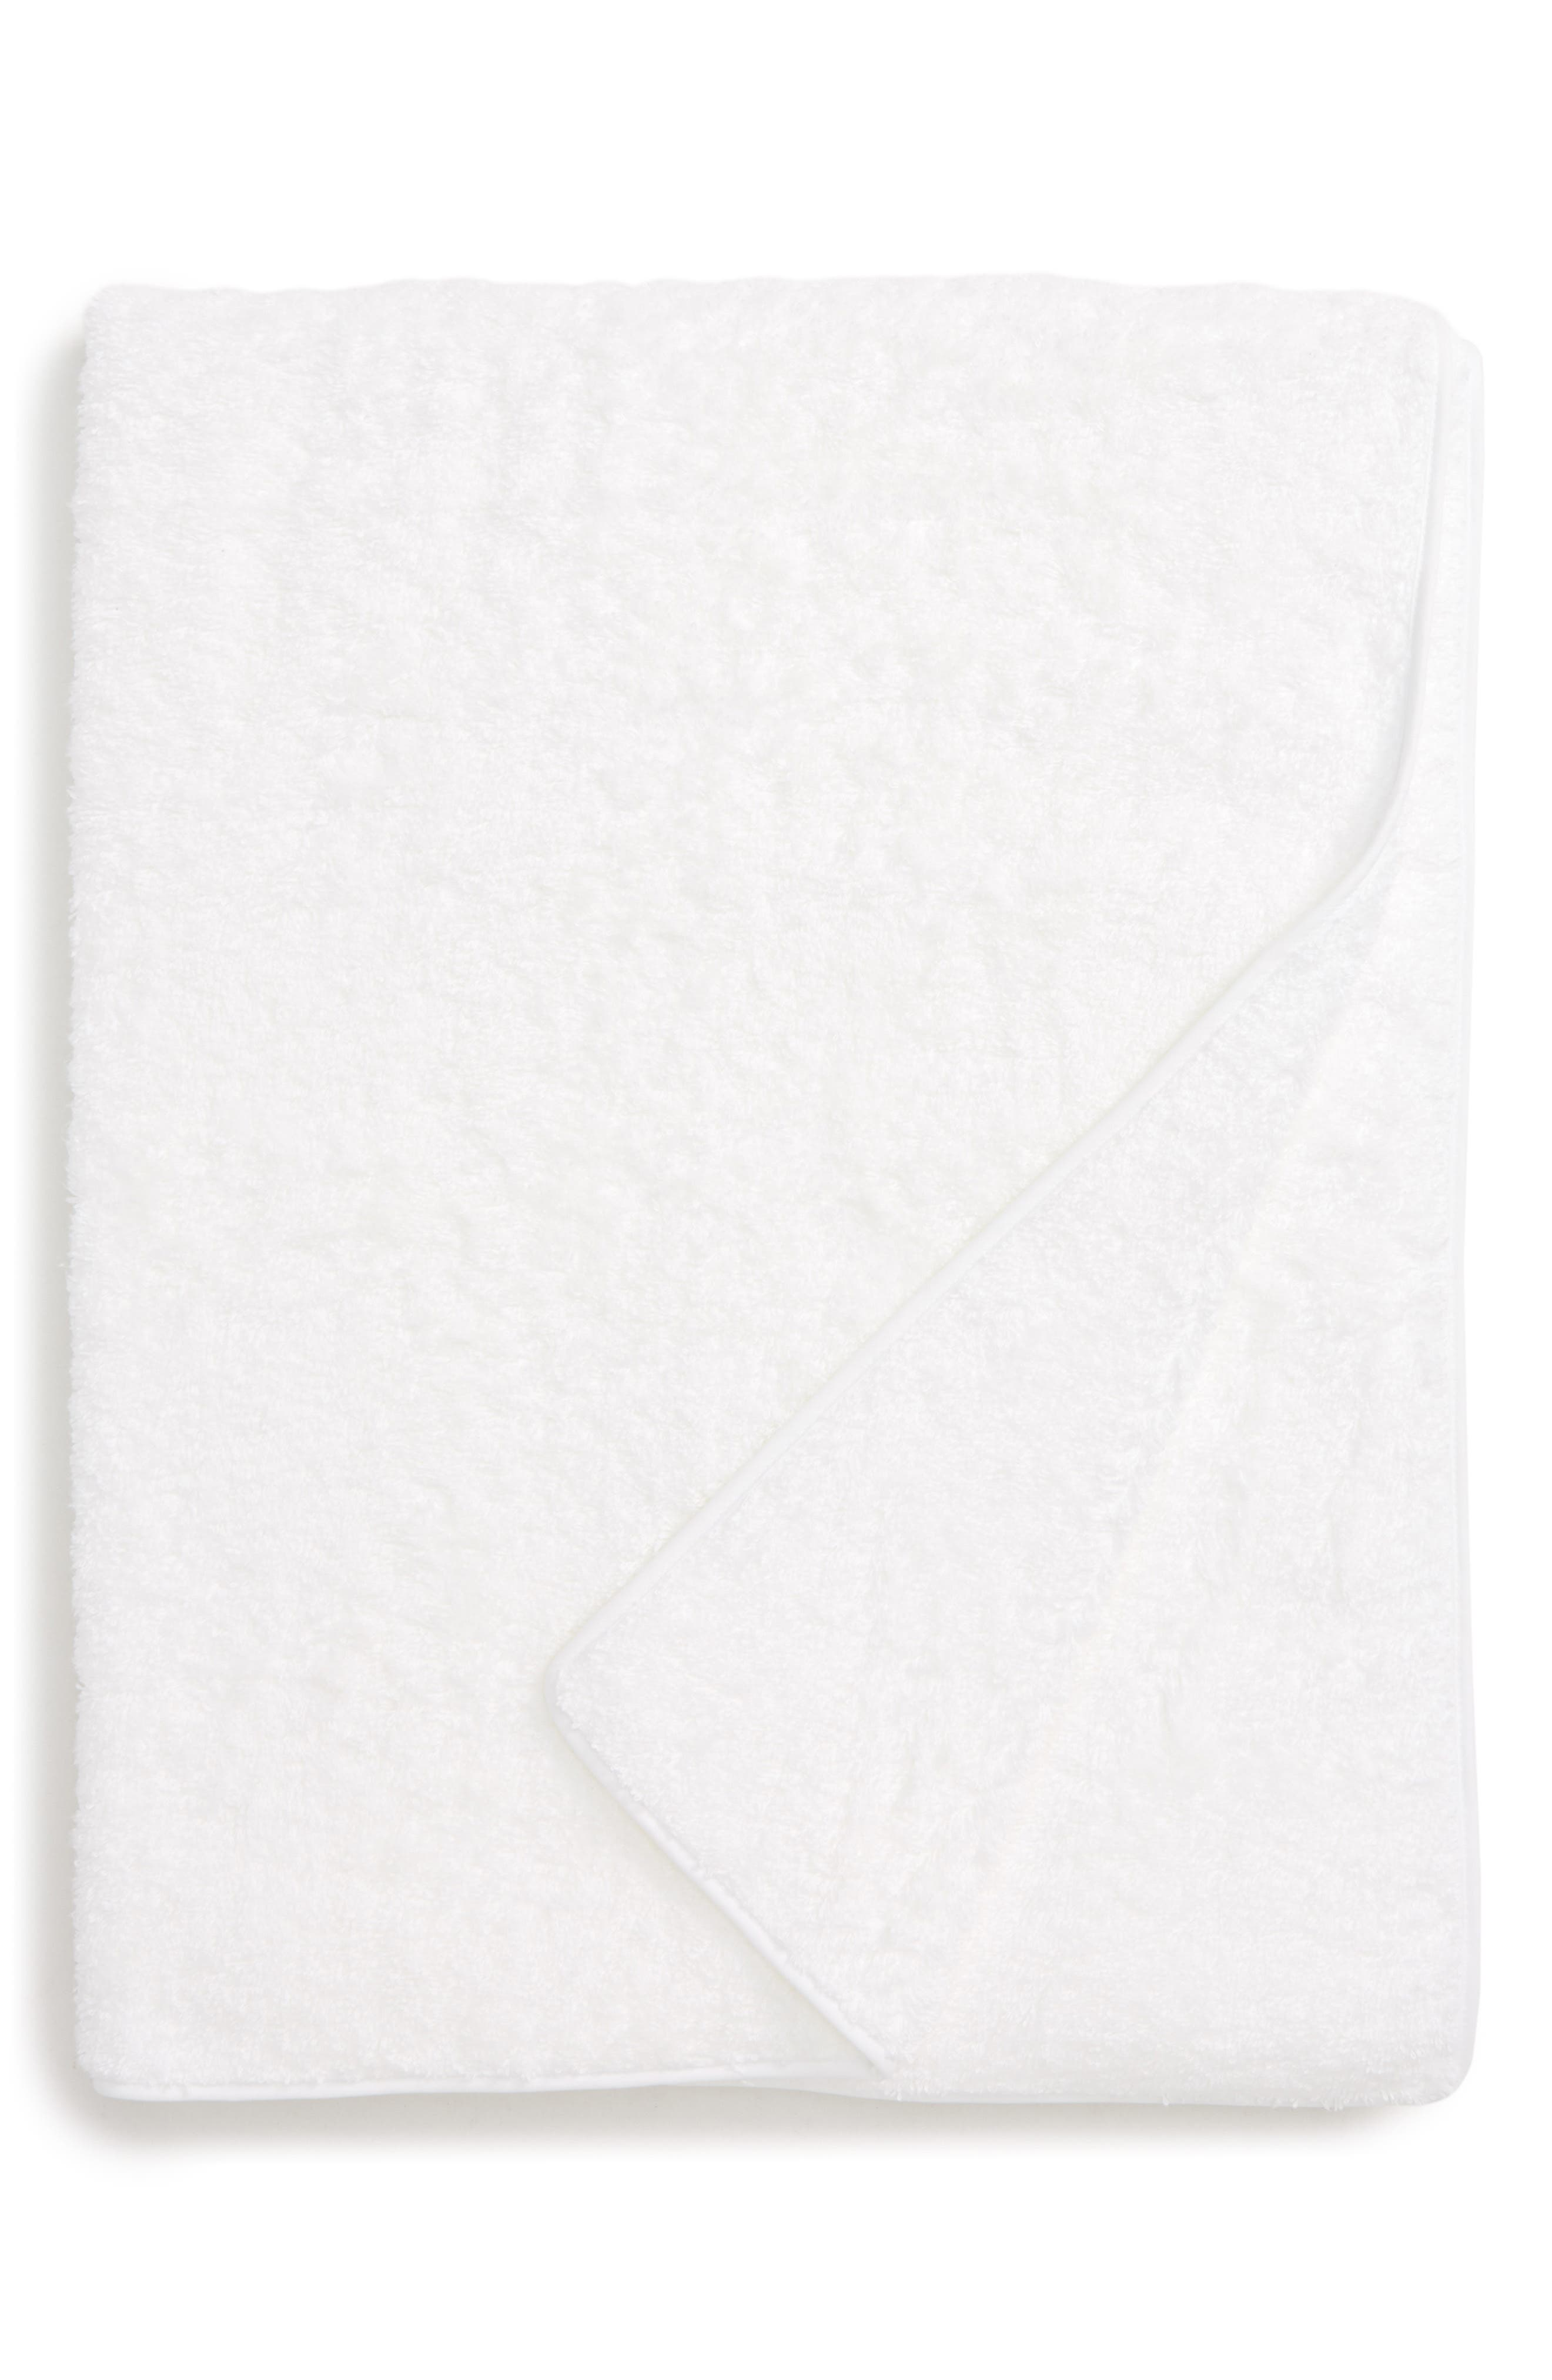 Cairo Spa Towel,                             Main thumbnail 1, color,                             WHITE